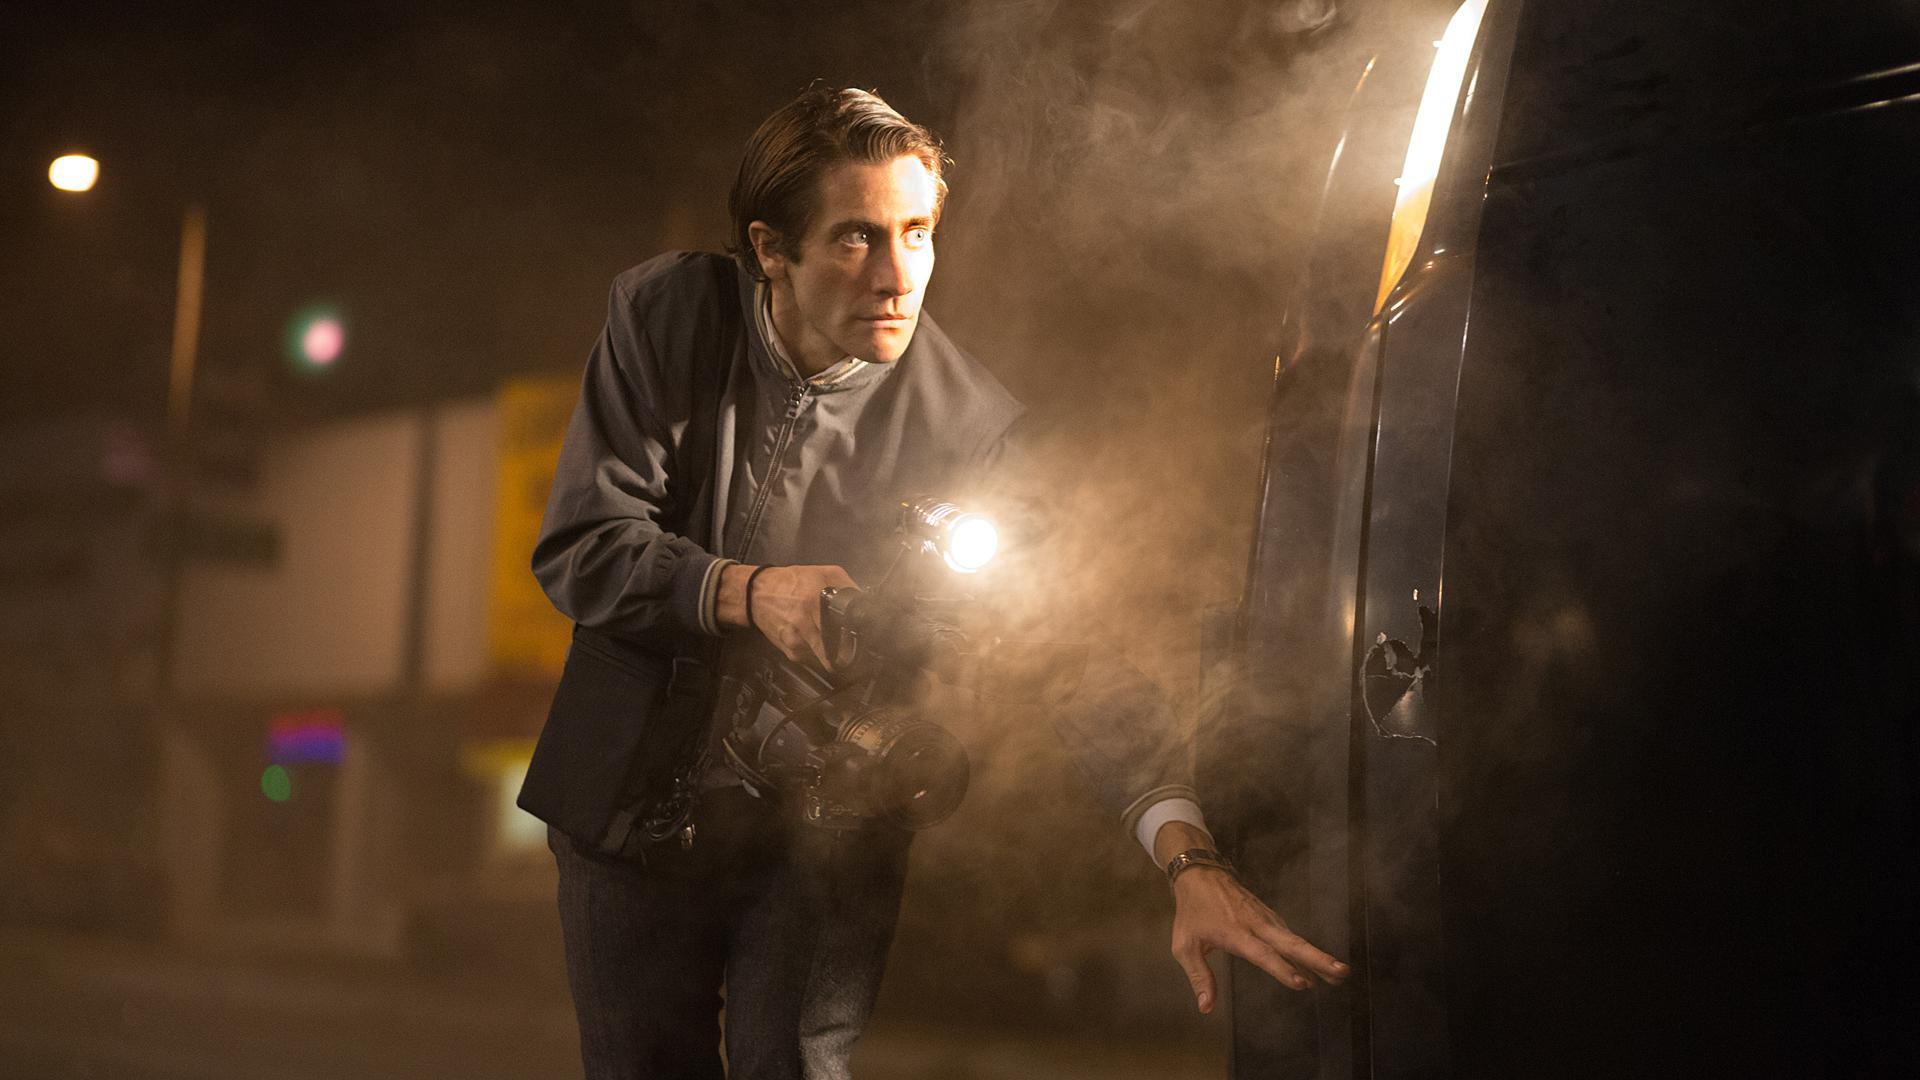 4 Times Jake Gyllenhaal gives us the creeps in <em>Nightcrawler</em> trailer